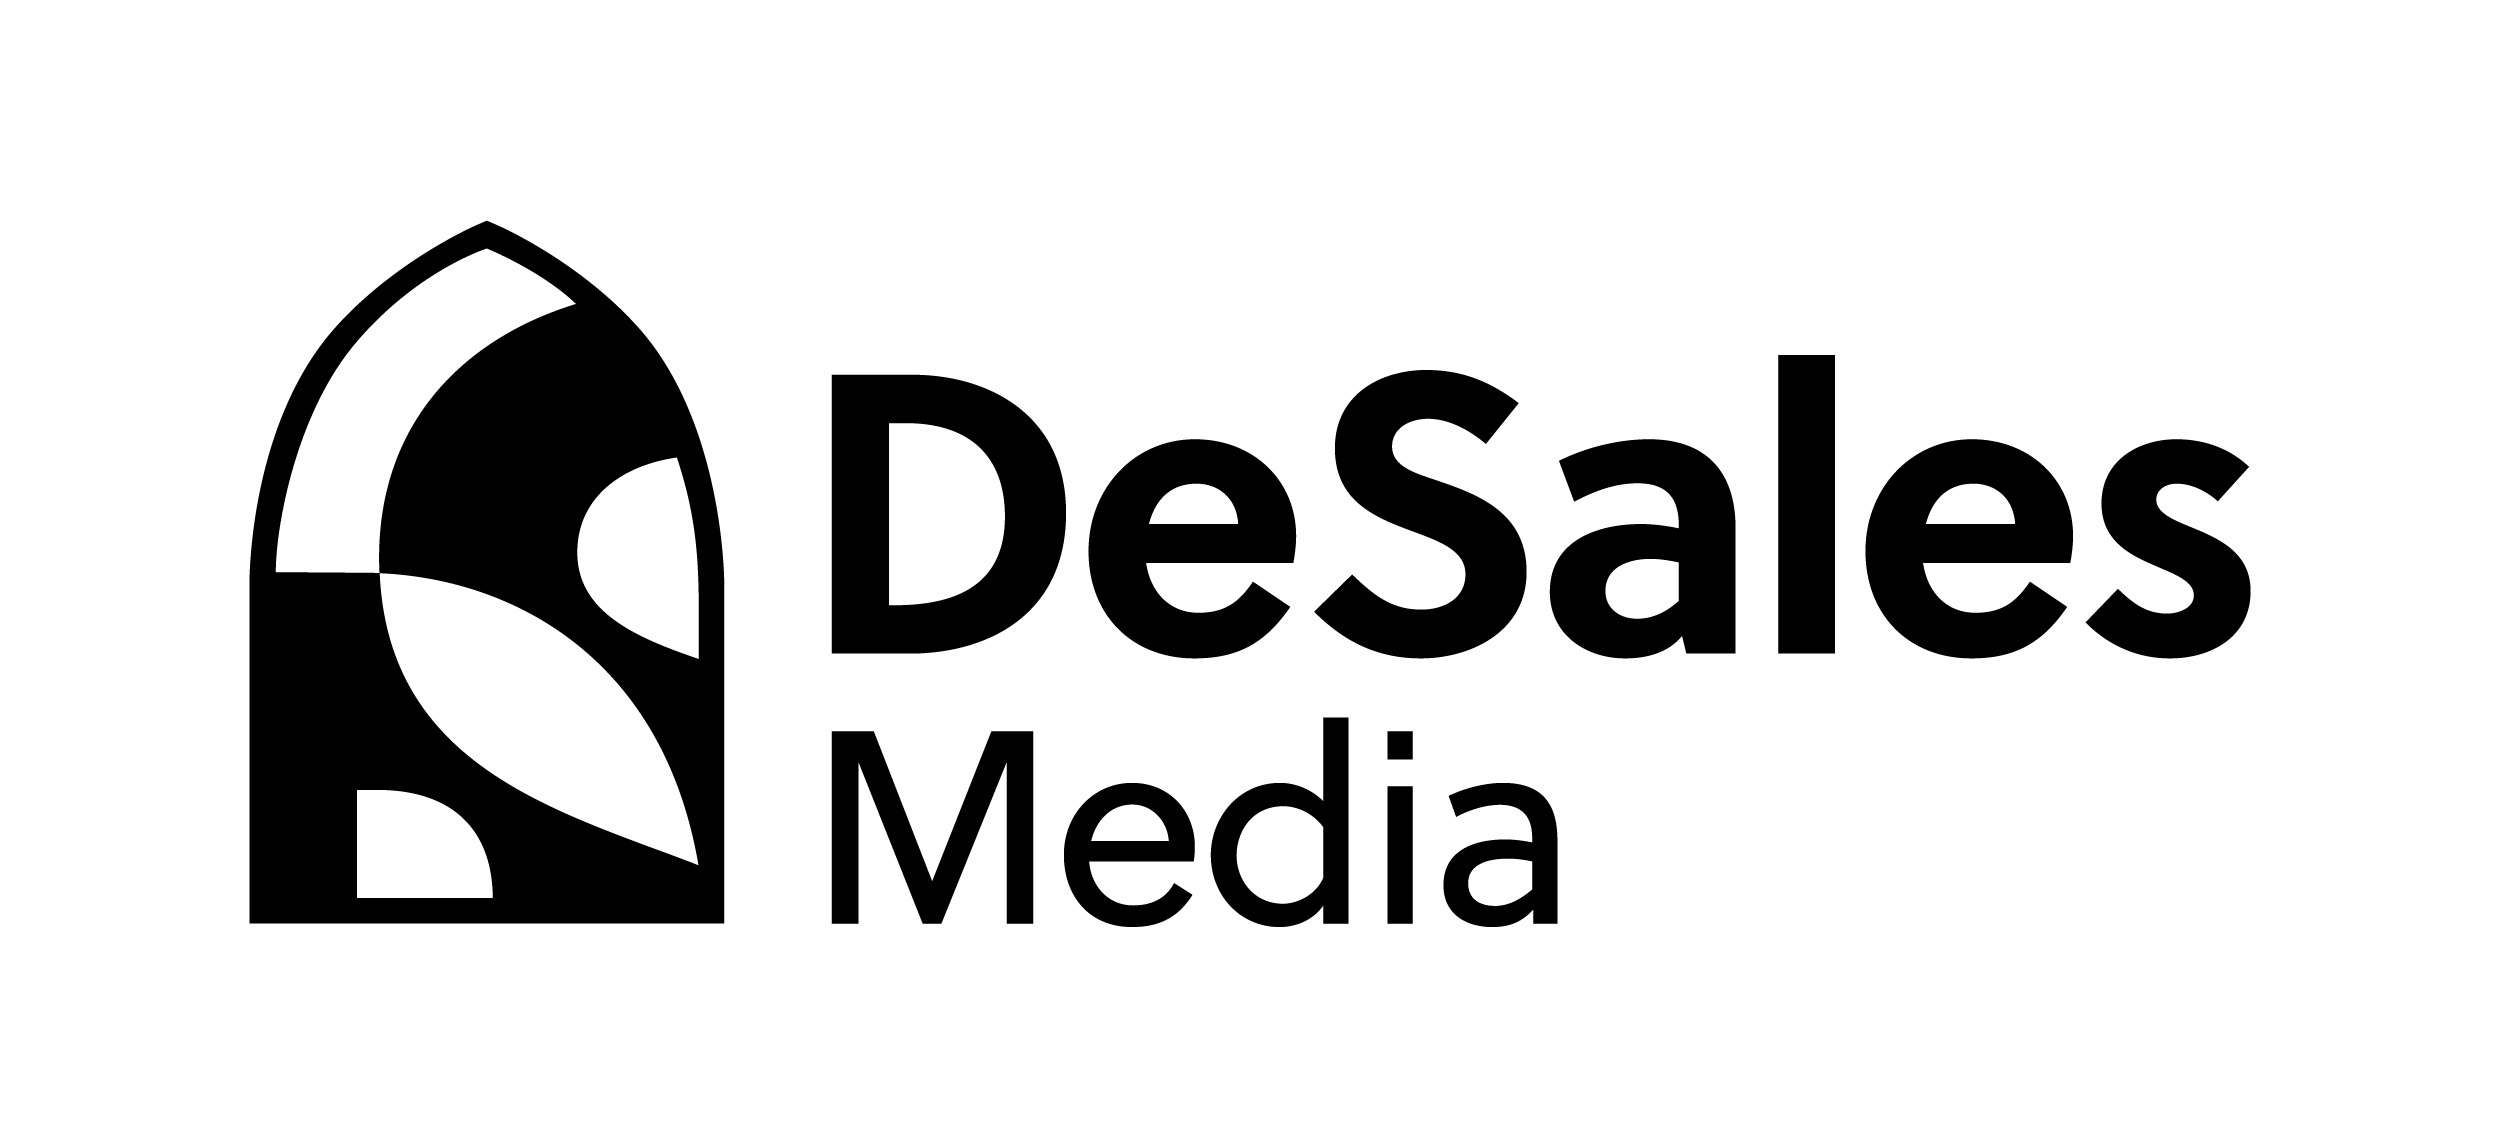 DeSales Media Believes in Sony's Ci and Crispin Solutions to Advance Faith-based Programming Through the Use of Technology